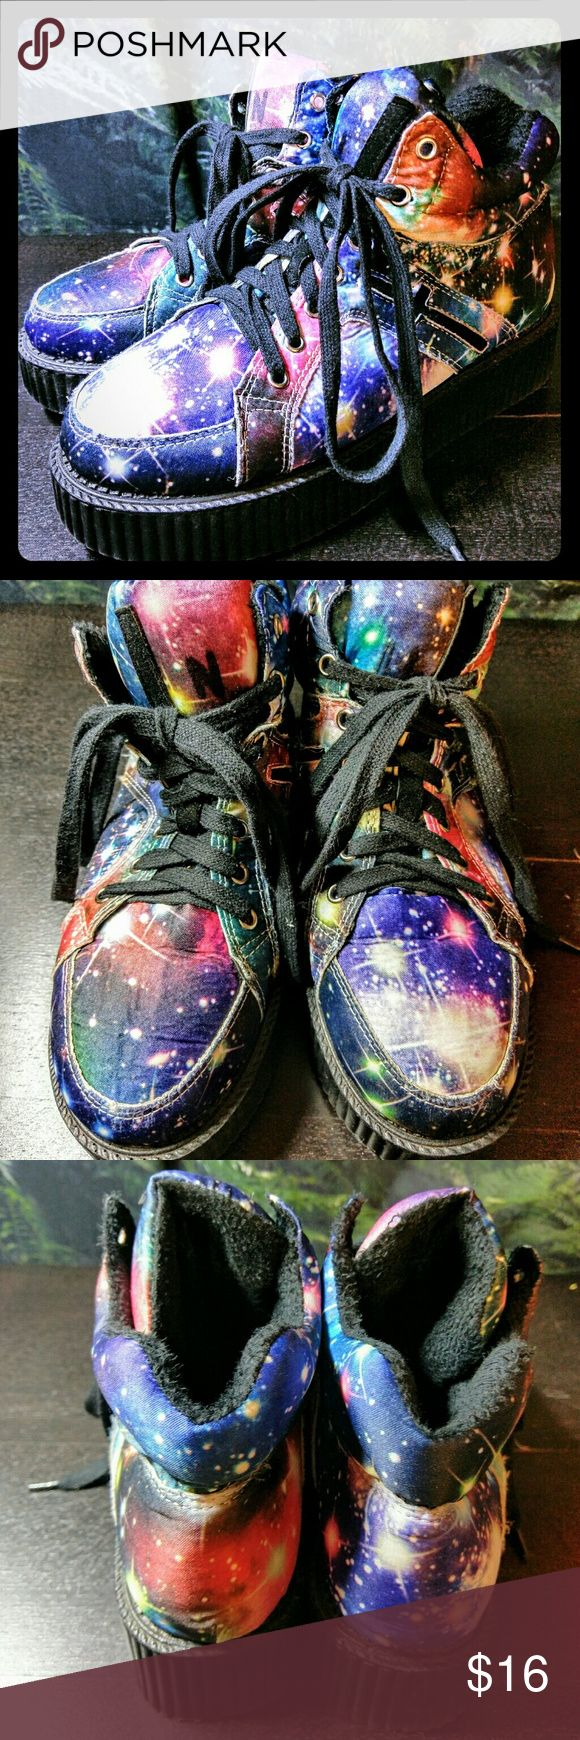 🏙🏙Galaxy Creeper Sneakers🏙🏙 These shoes have a bit of everything, including thick fuzzy foam lining and subtle crosses on the sides. Creepers and sneakers in one! Very lightweight shoes, so easier to walk in than your typical creepers! This is a reposh, only worn a handful of times by both owners...Seems we can't get the size right! They fit me loose (I'm 7.5) but okay, mostly just trying to clear out my closet. They are China size 40, feels like an 8 fits best. Shoes Sneakers